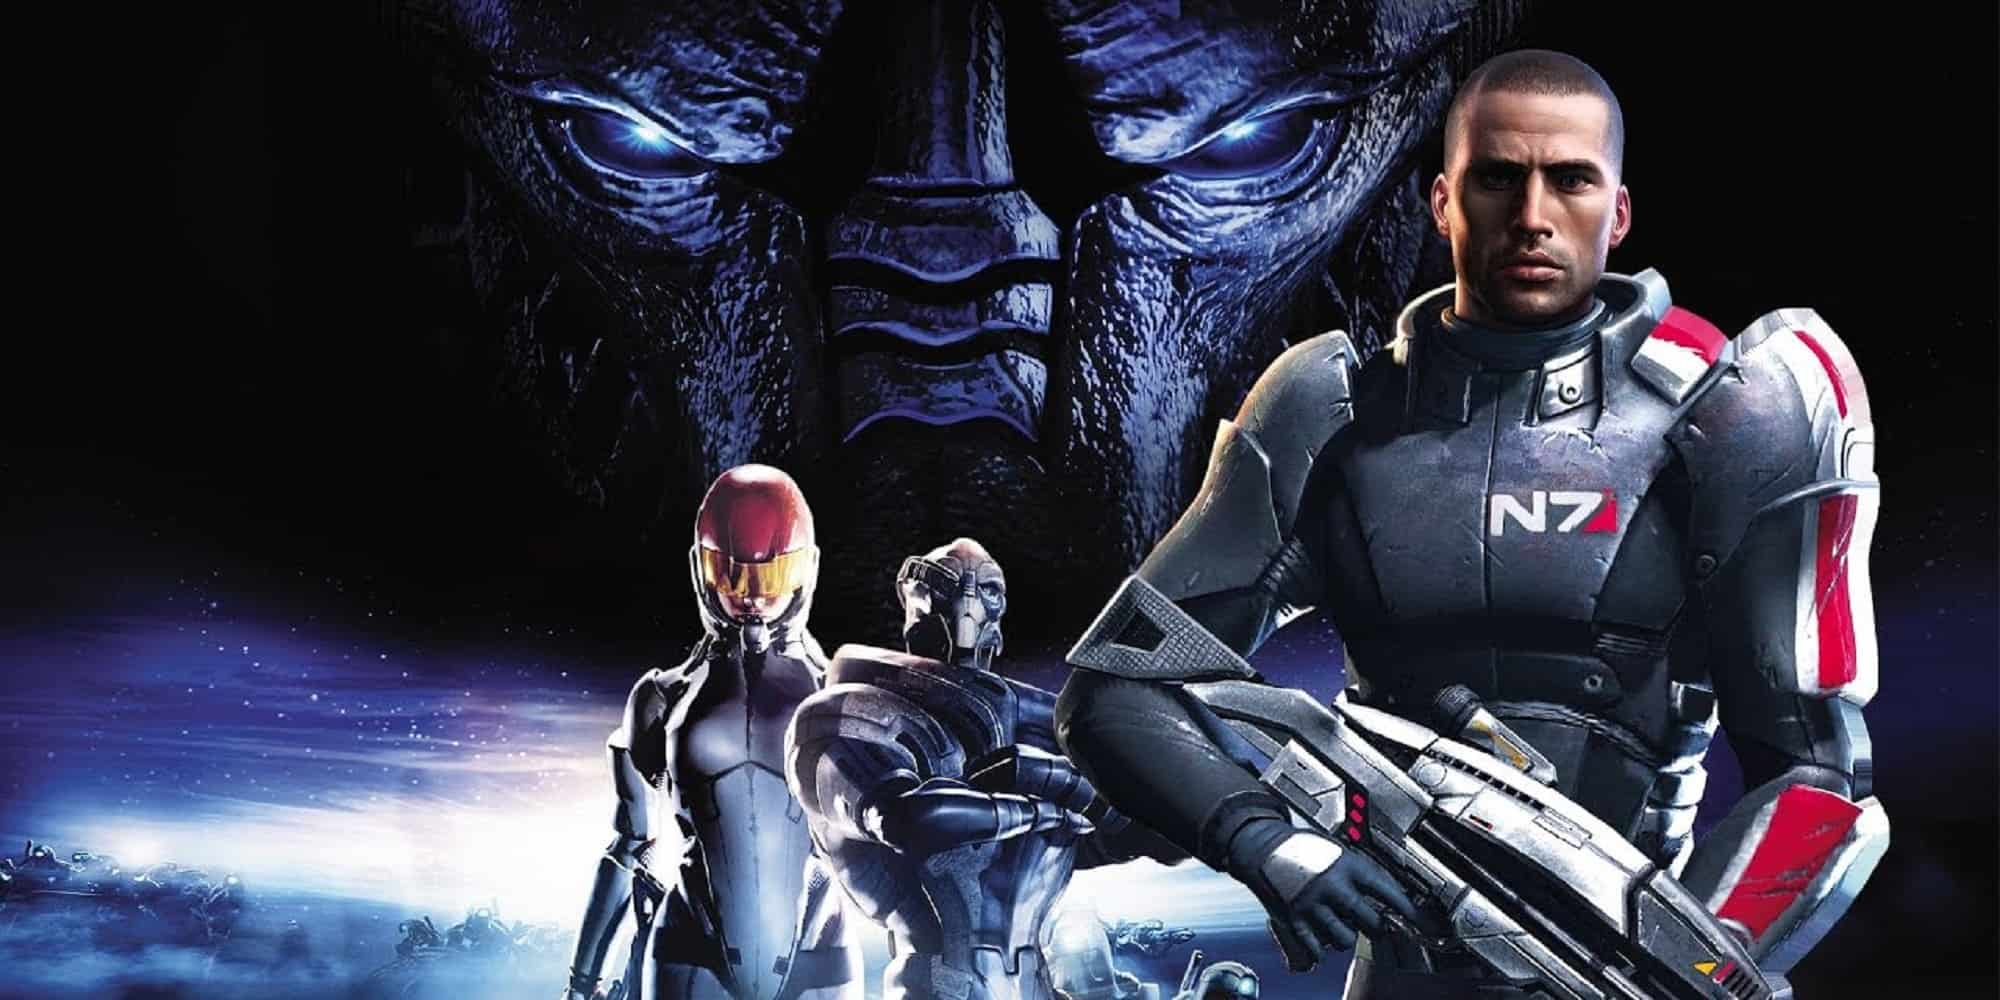 Mass Effect 1 playable next-gen consoles Featured key art